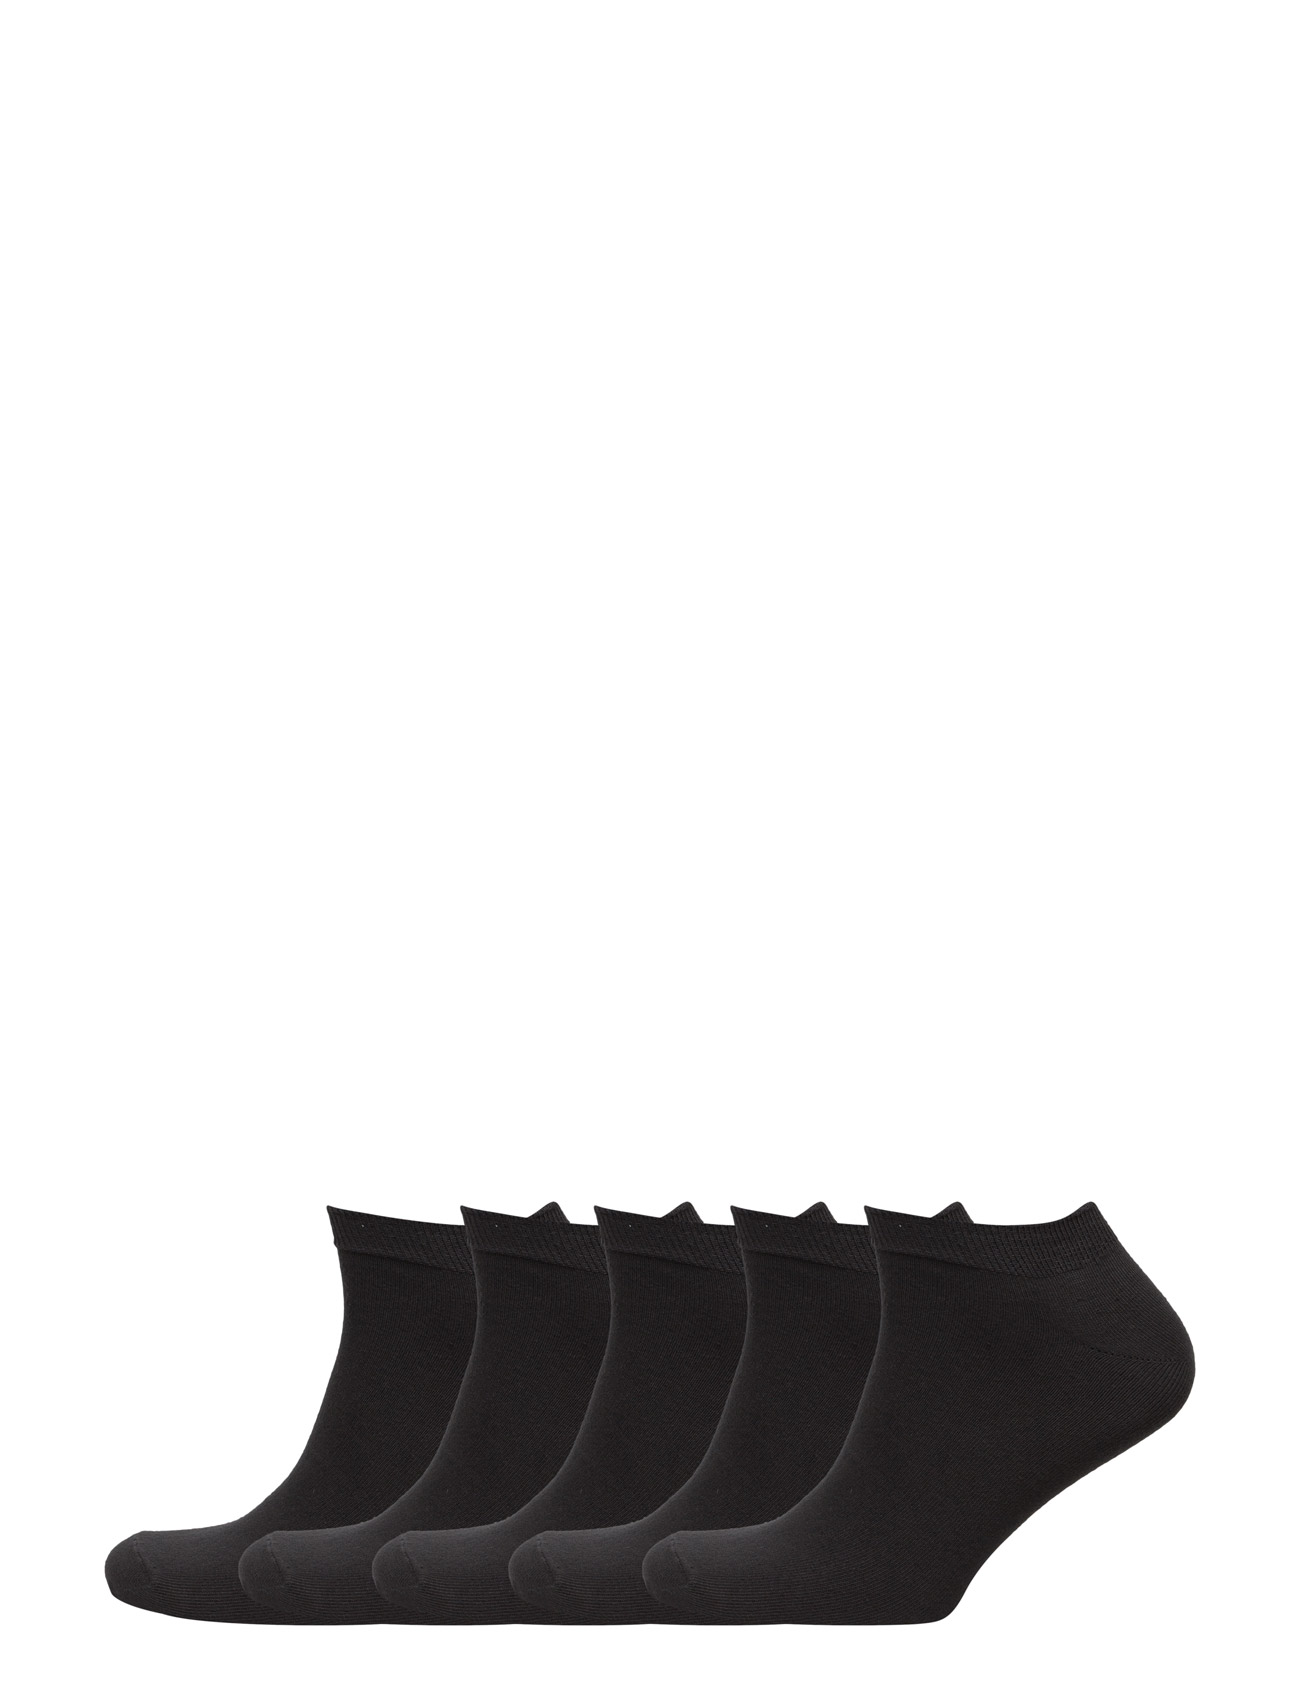 Mens 5 Pack Sneaker Socks thumbnail